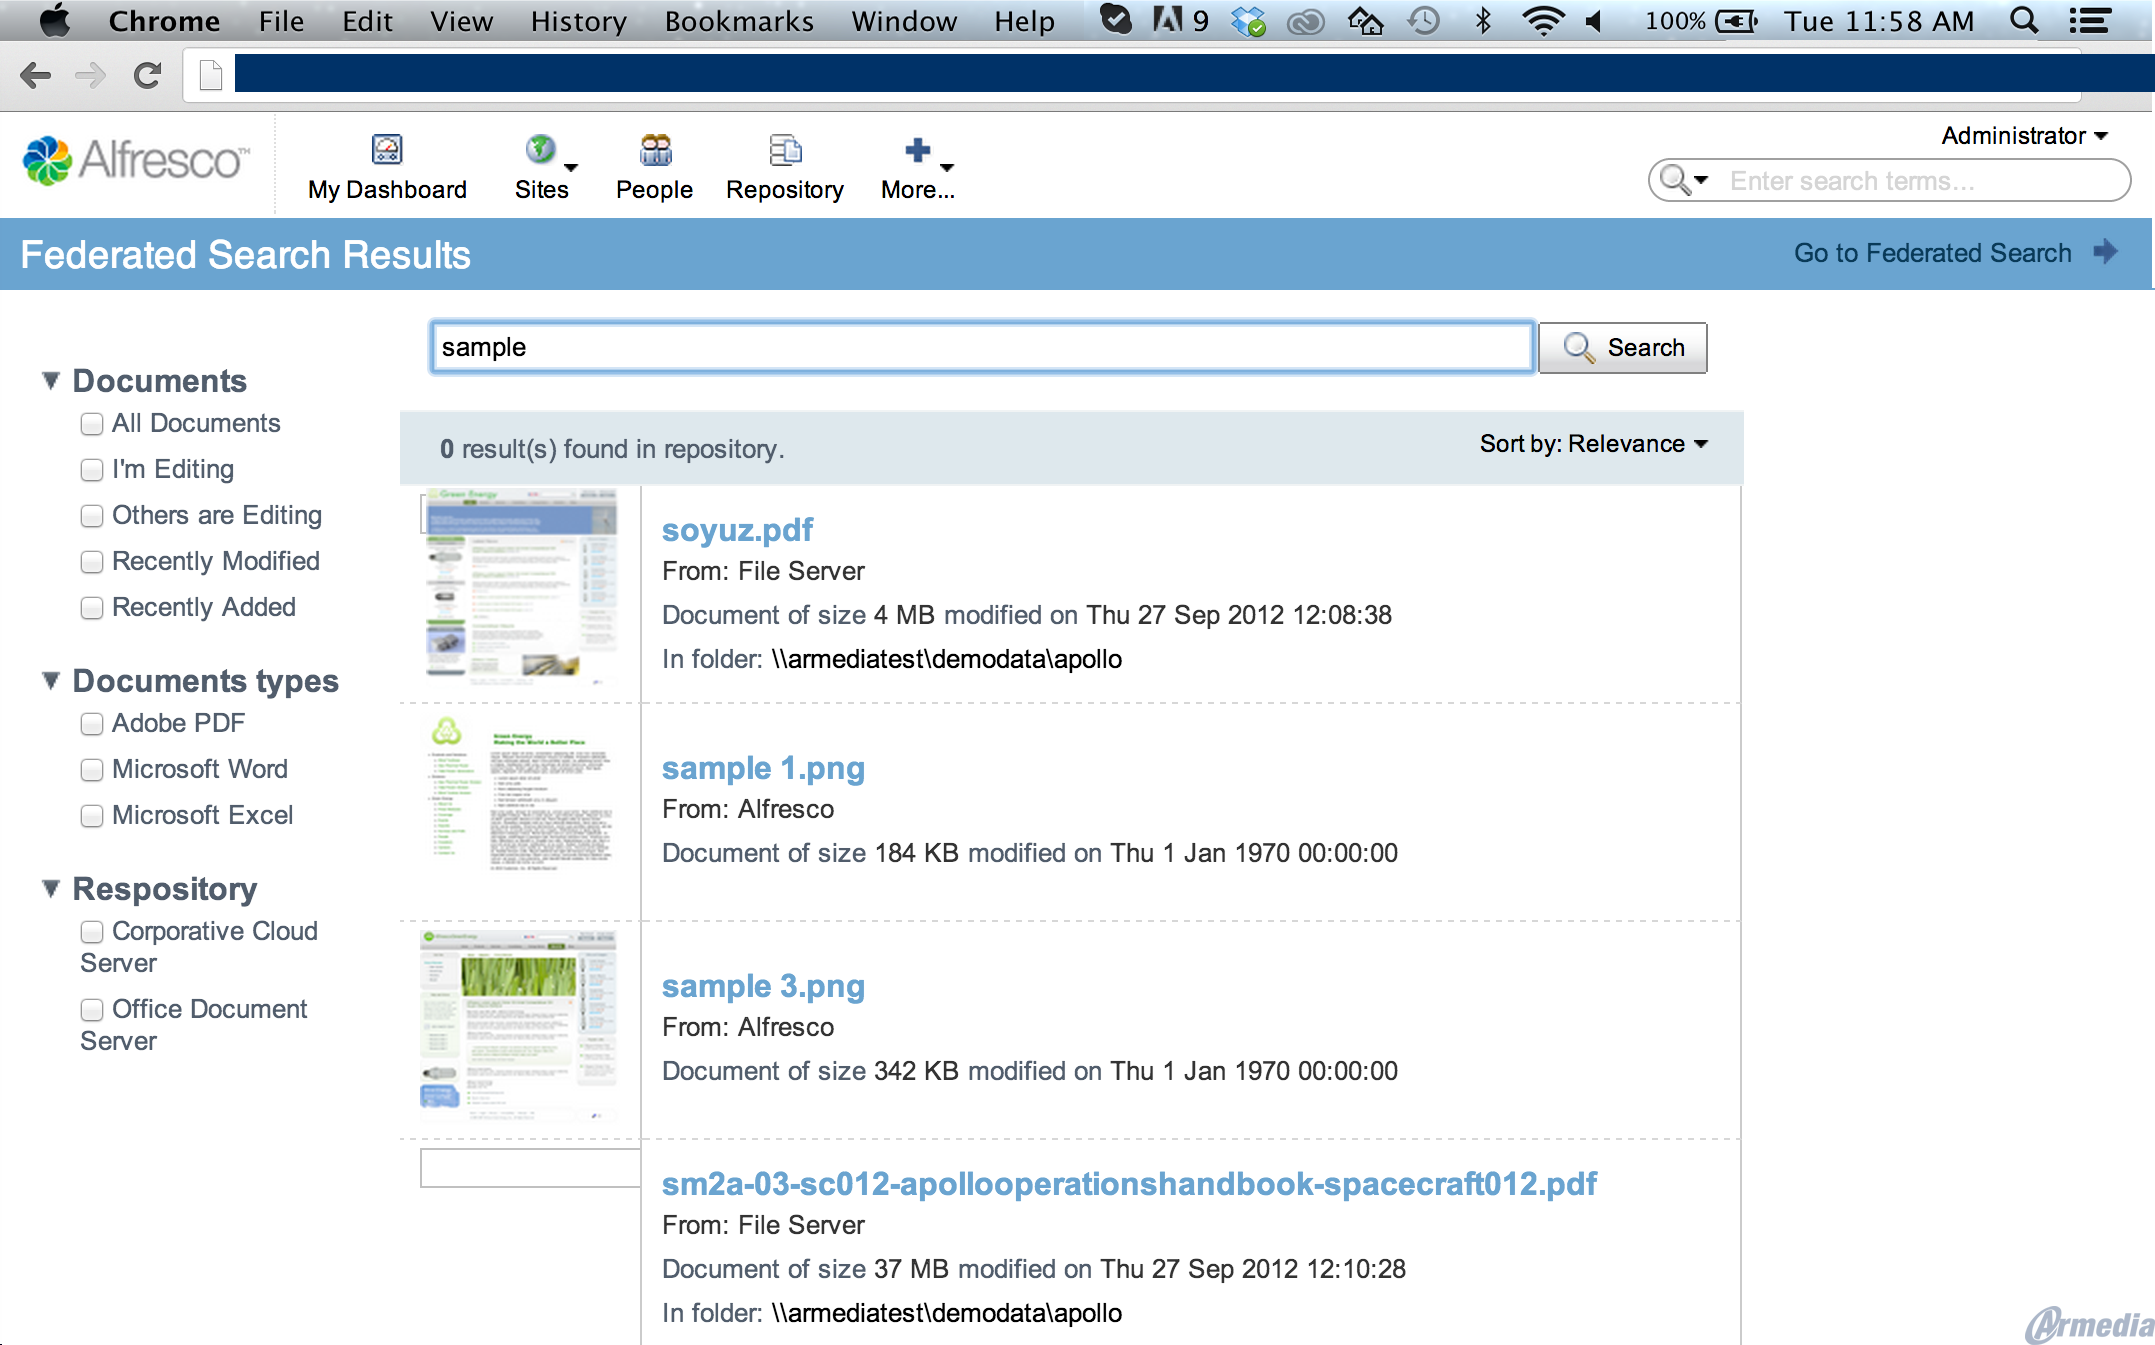 Alfresco_Federated_Search_Resultspage